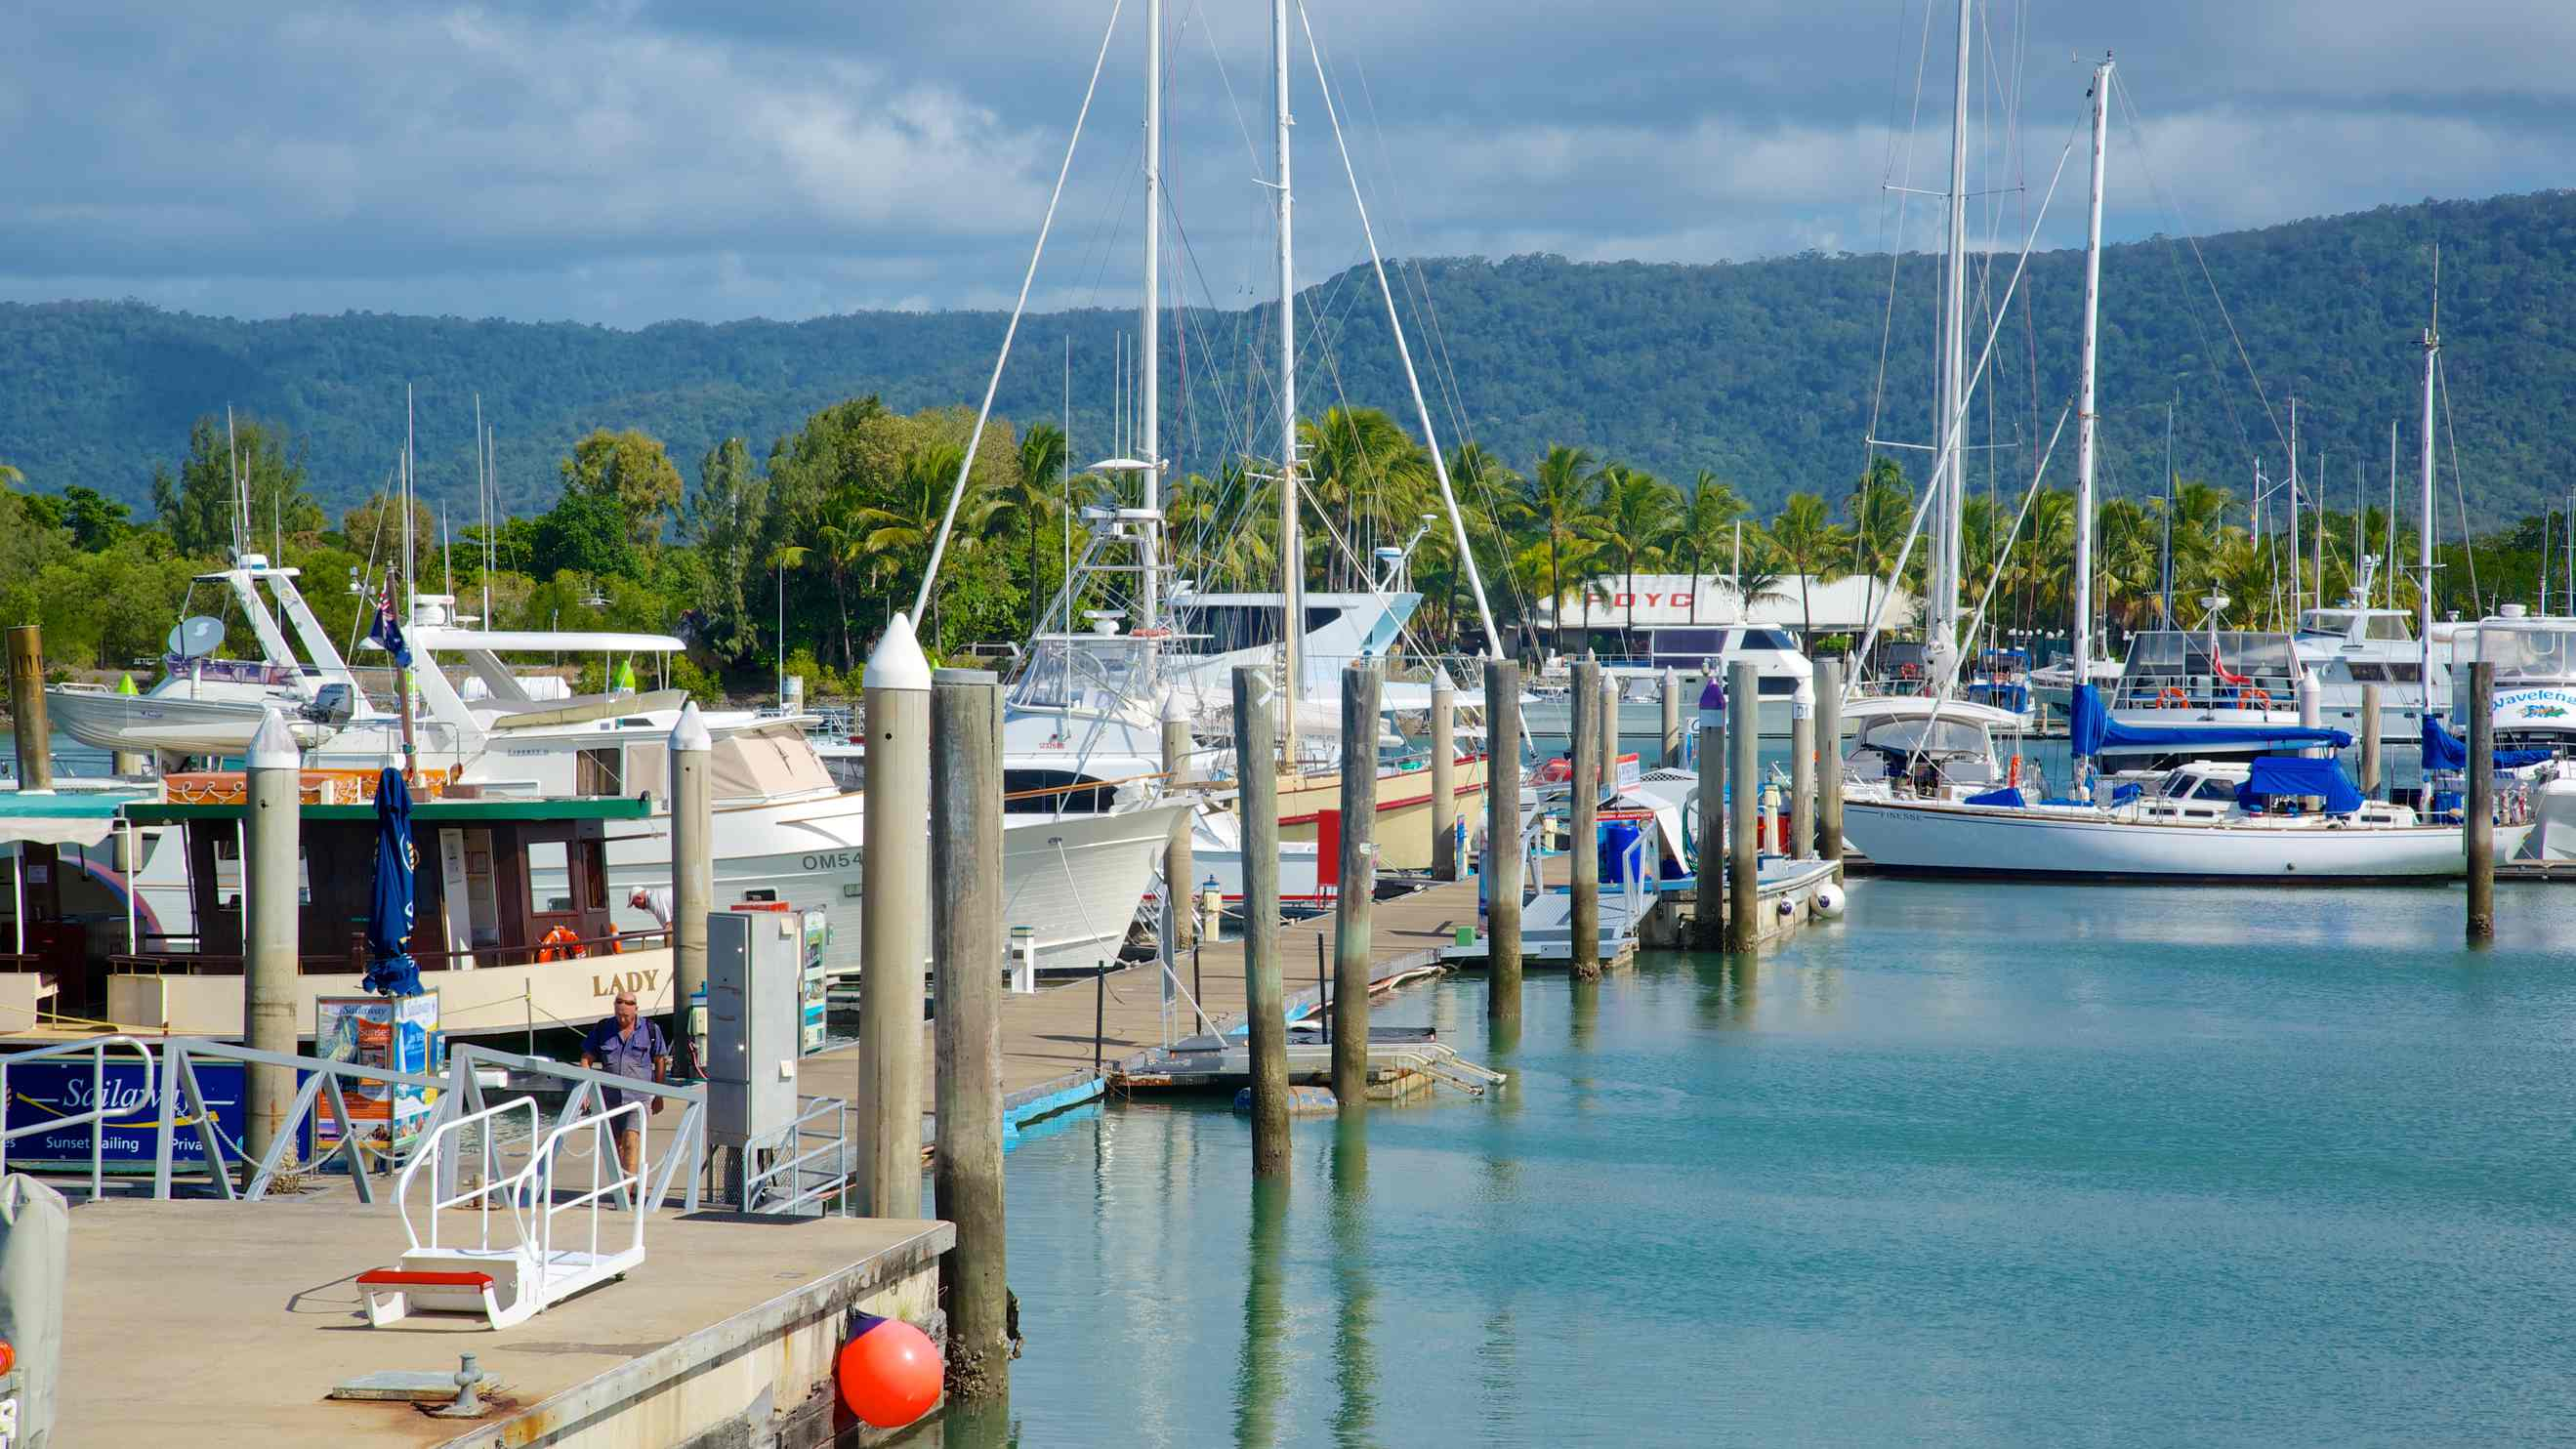 Port Douglas Car Hire: Book A Cheap Car Rental In Port Douglas |  Expedia.com.au